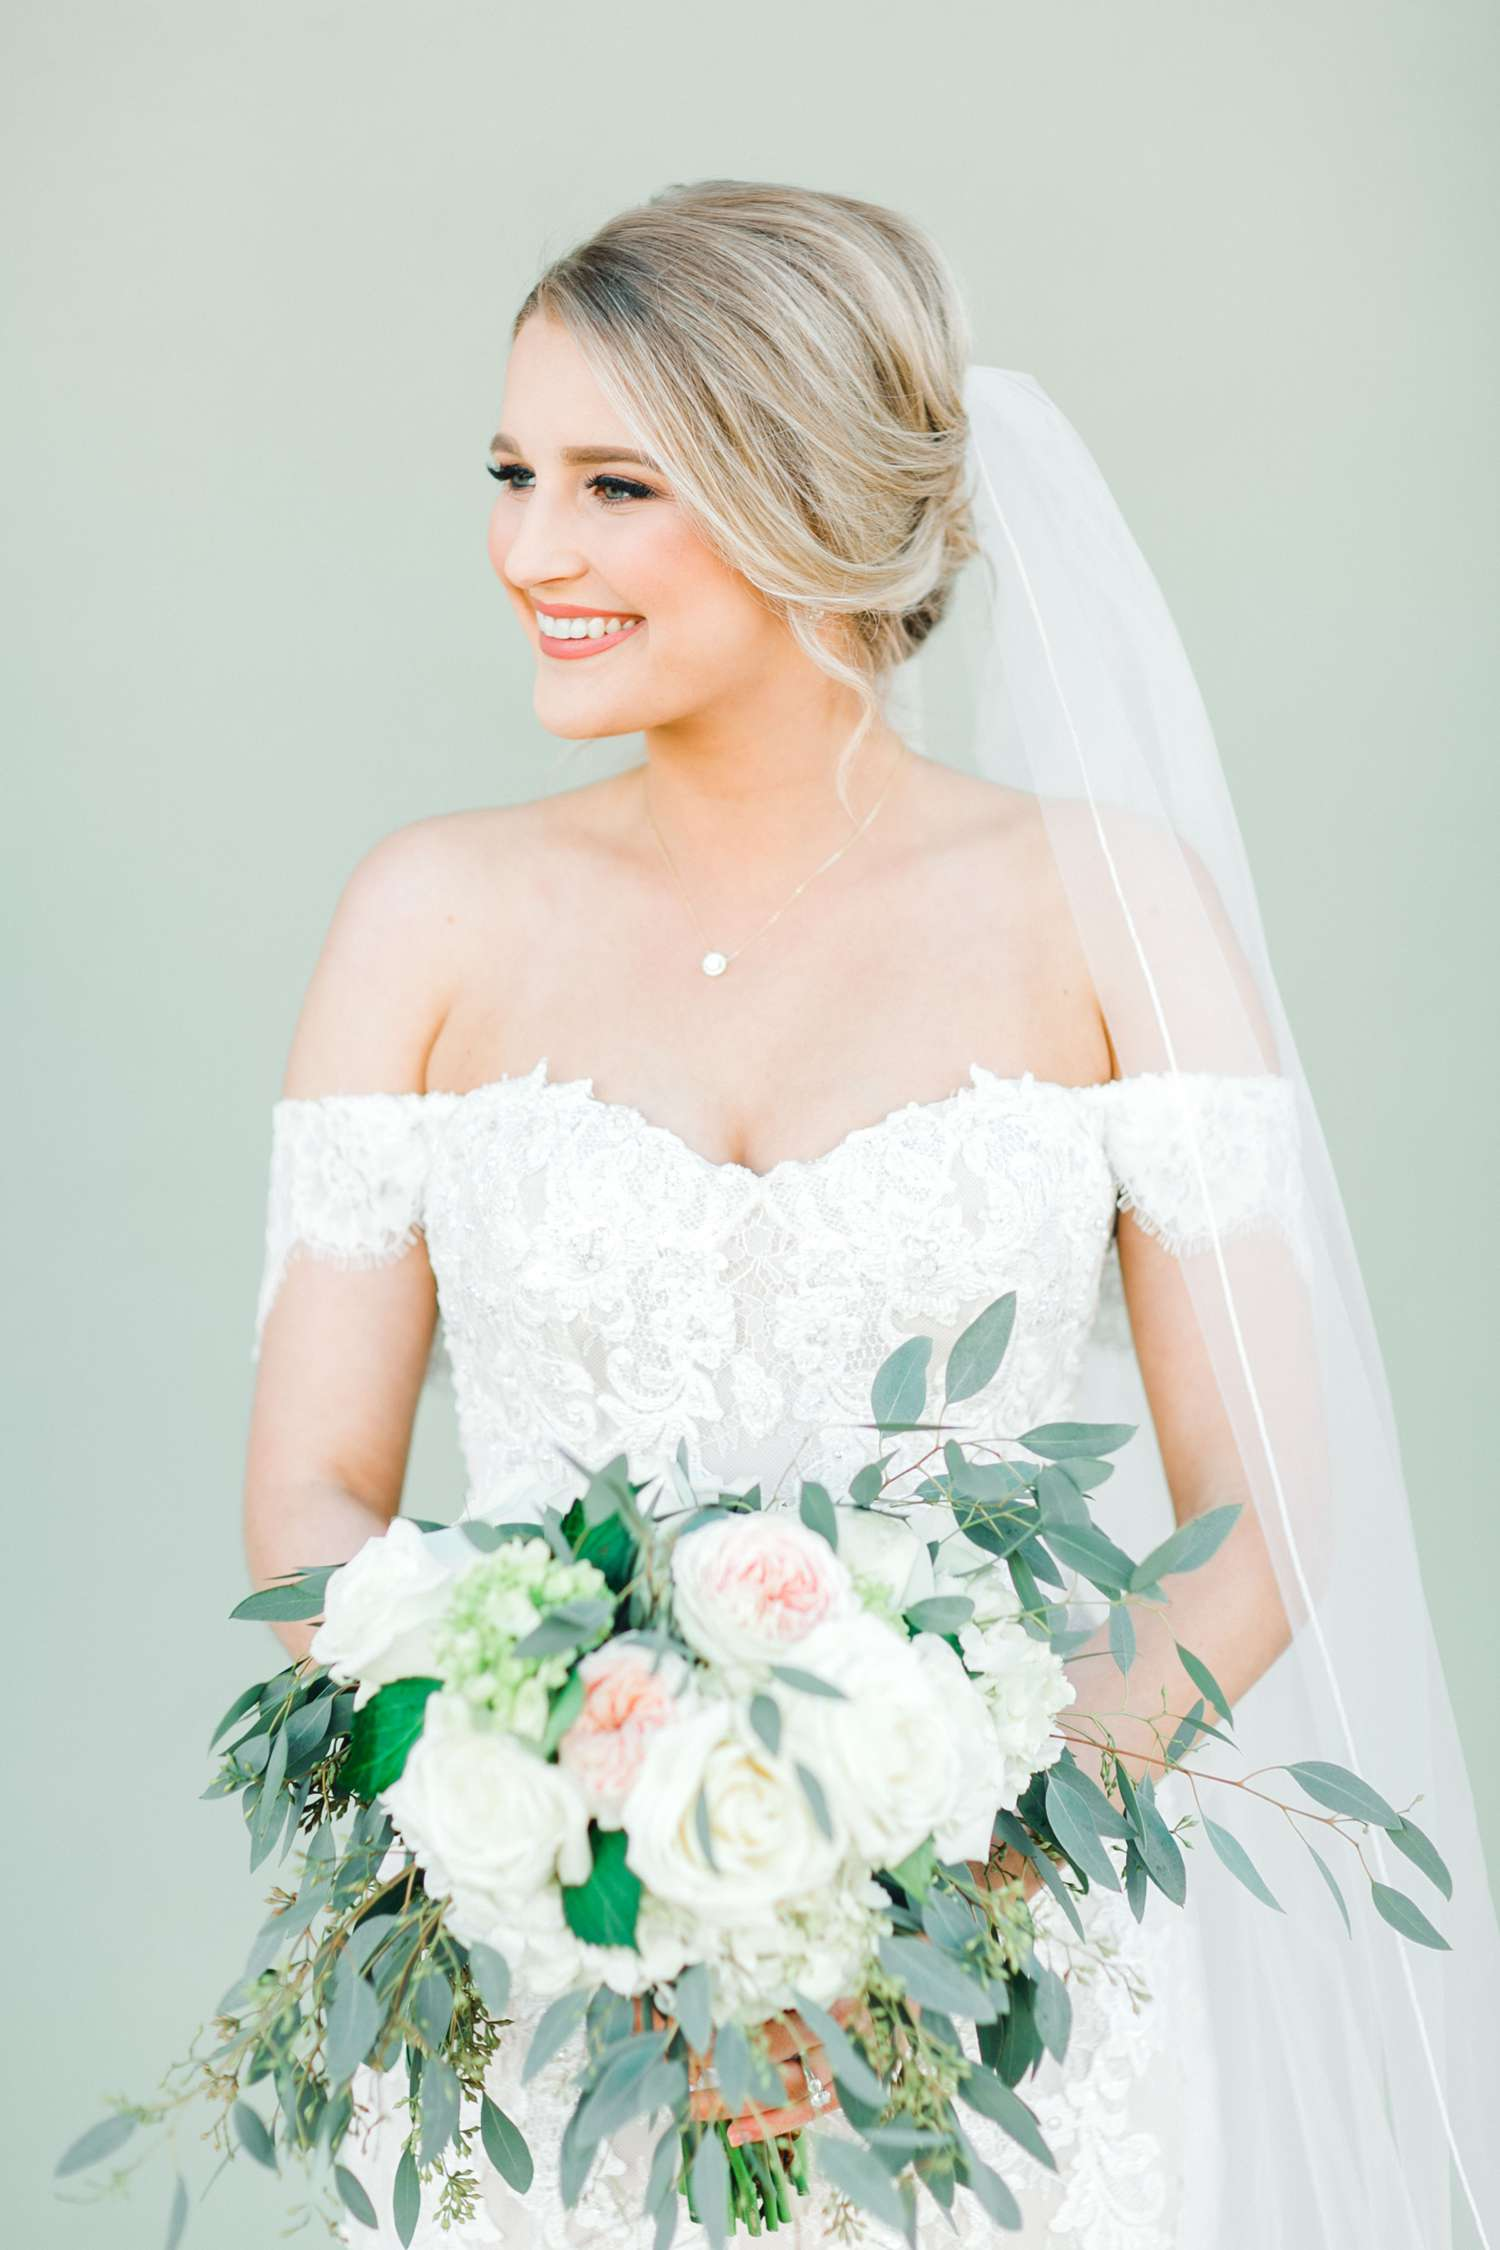 MORGAN+BOONE+BRIDALS+WEDDING+PHOTOGRAPHER_0020.jpg